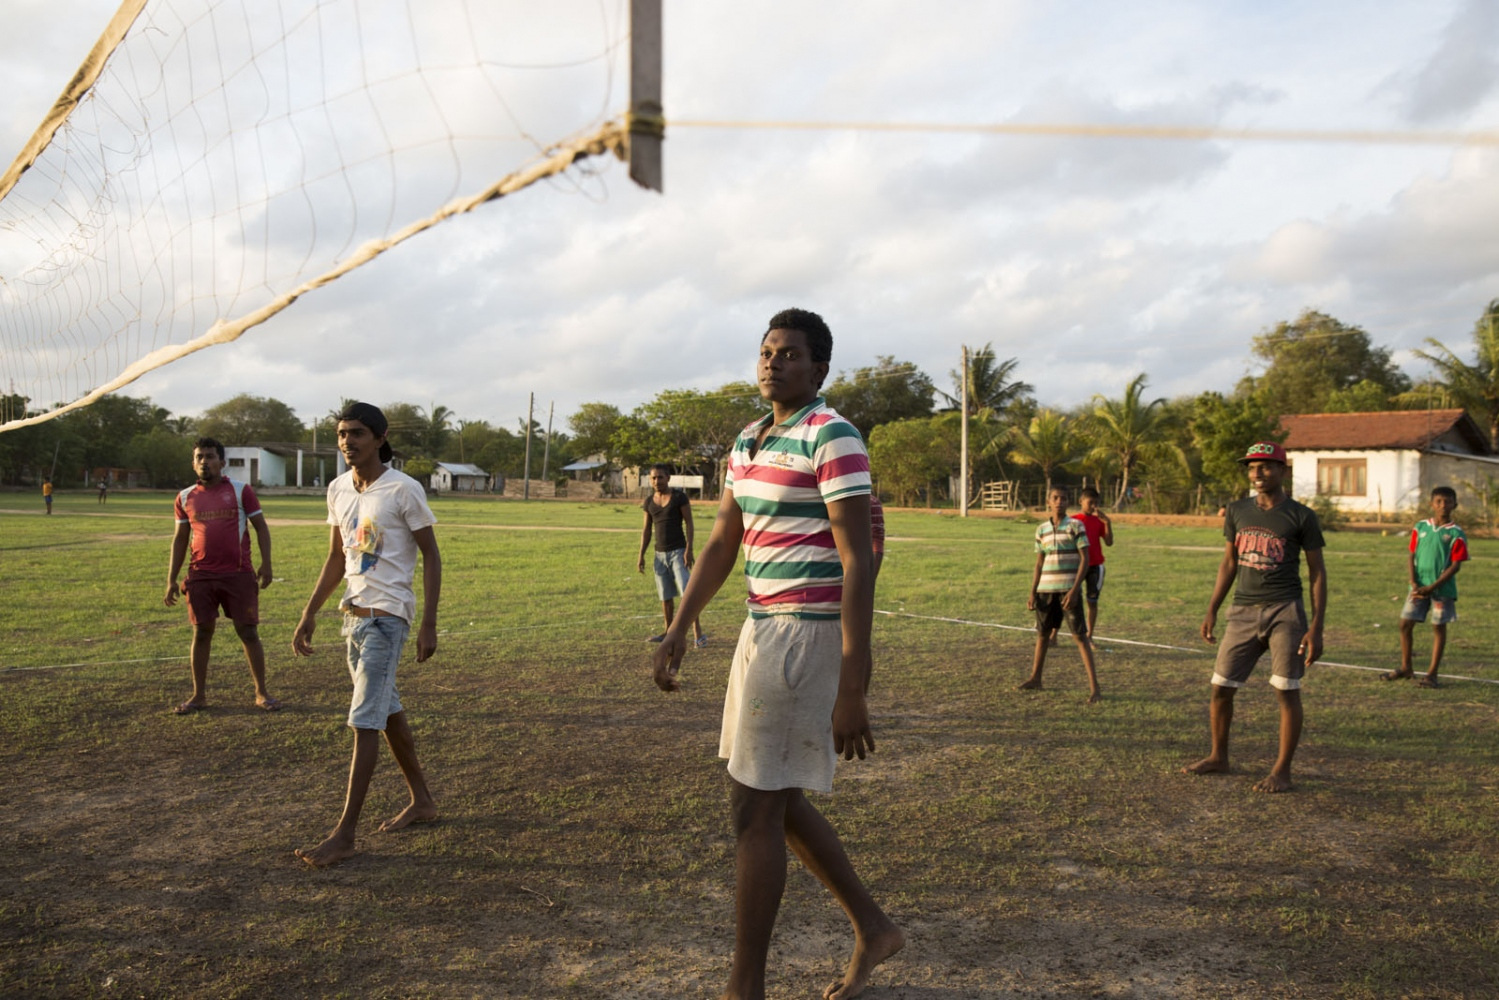 "Kovilage Anurudha Madumadawa, 18, plays volleyball with his friends in the Good Shed area of Puttalam town. At 6'4"" he towers above his friends. Puttalam, Sri Lanka - September 2017"